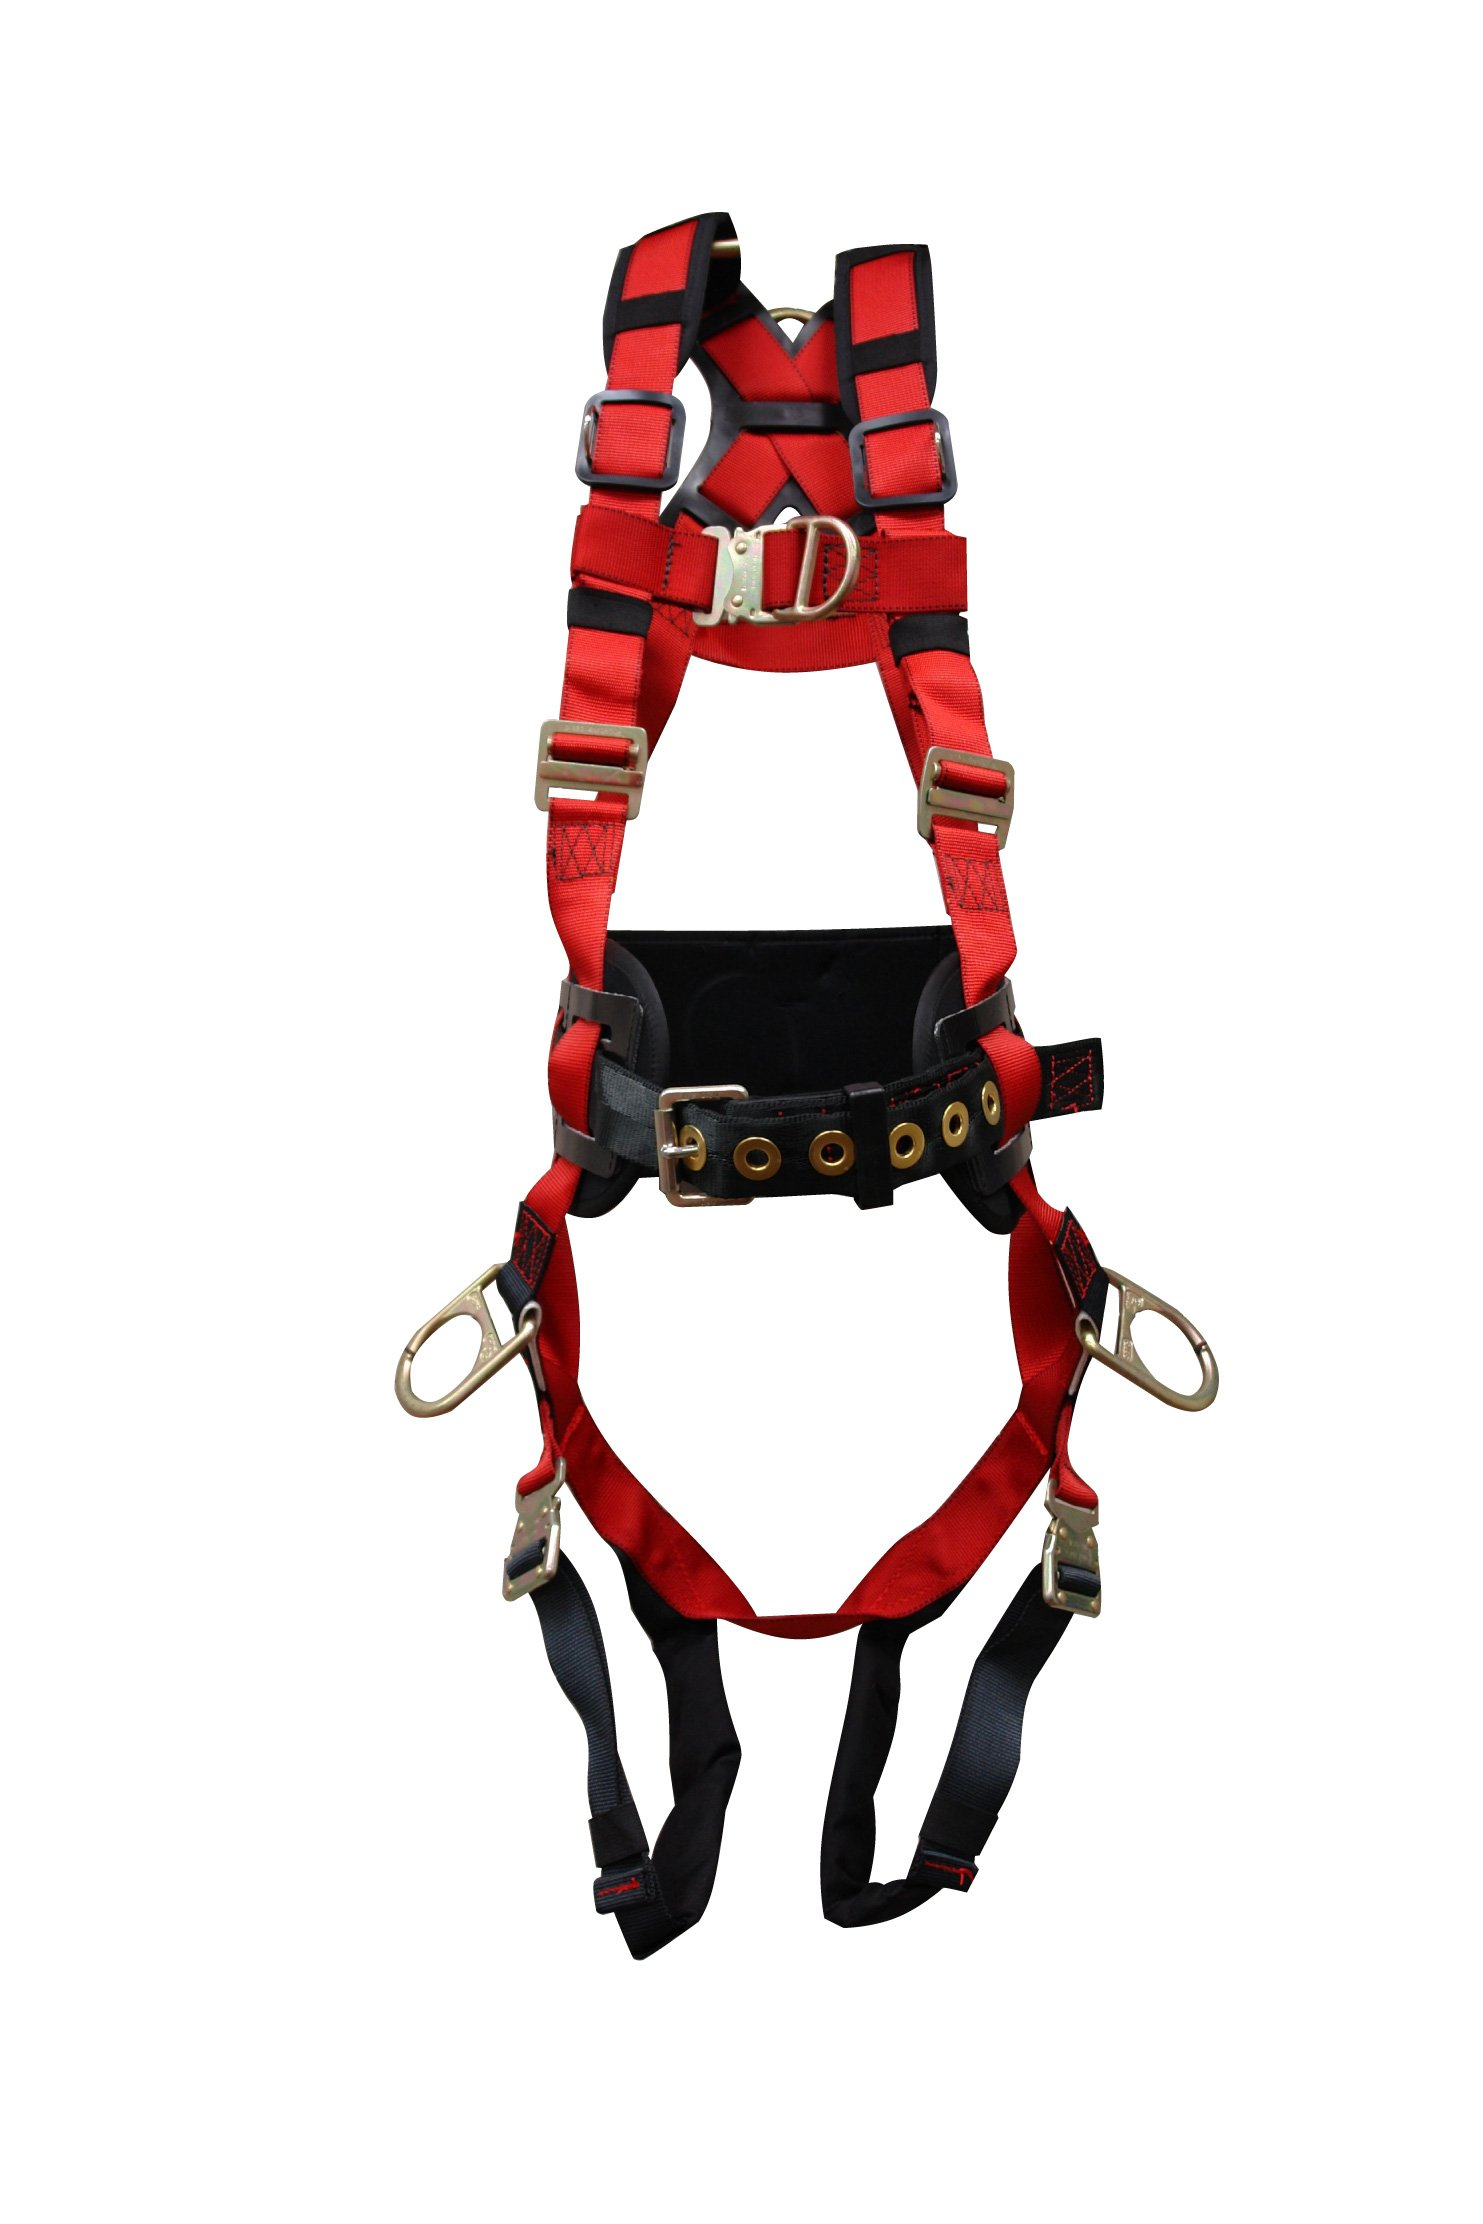 Elk River 62452 WindEagle Polyester/Nylon 4 D-Ring LE Harness with Quick Connect Buckles, Medium